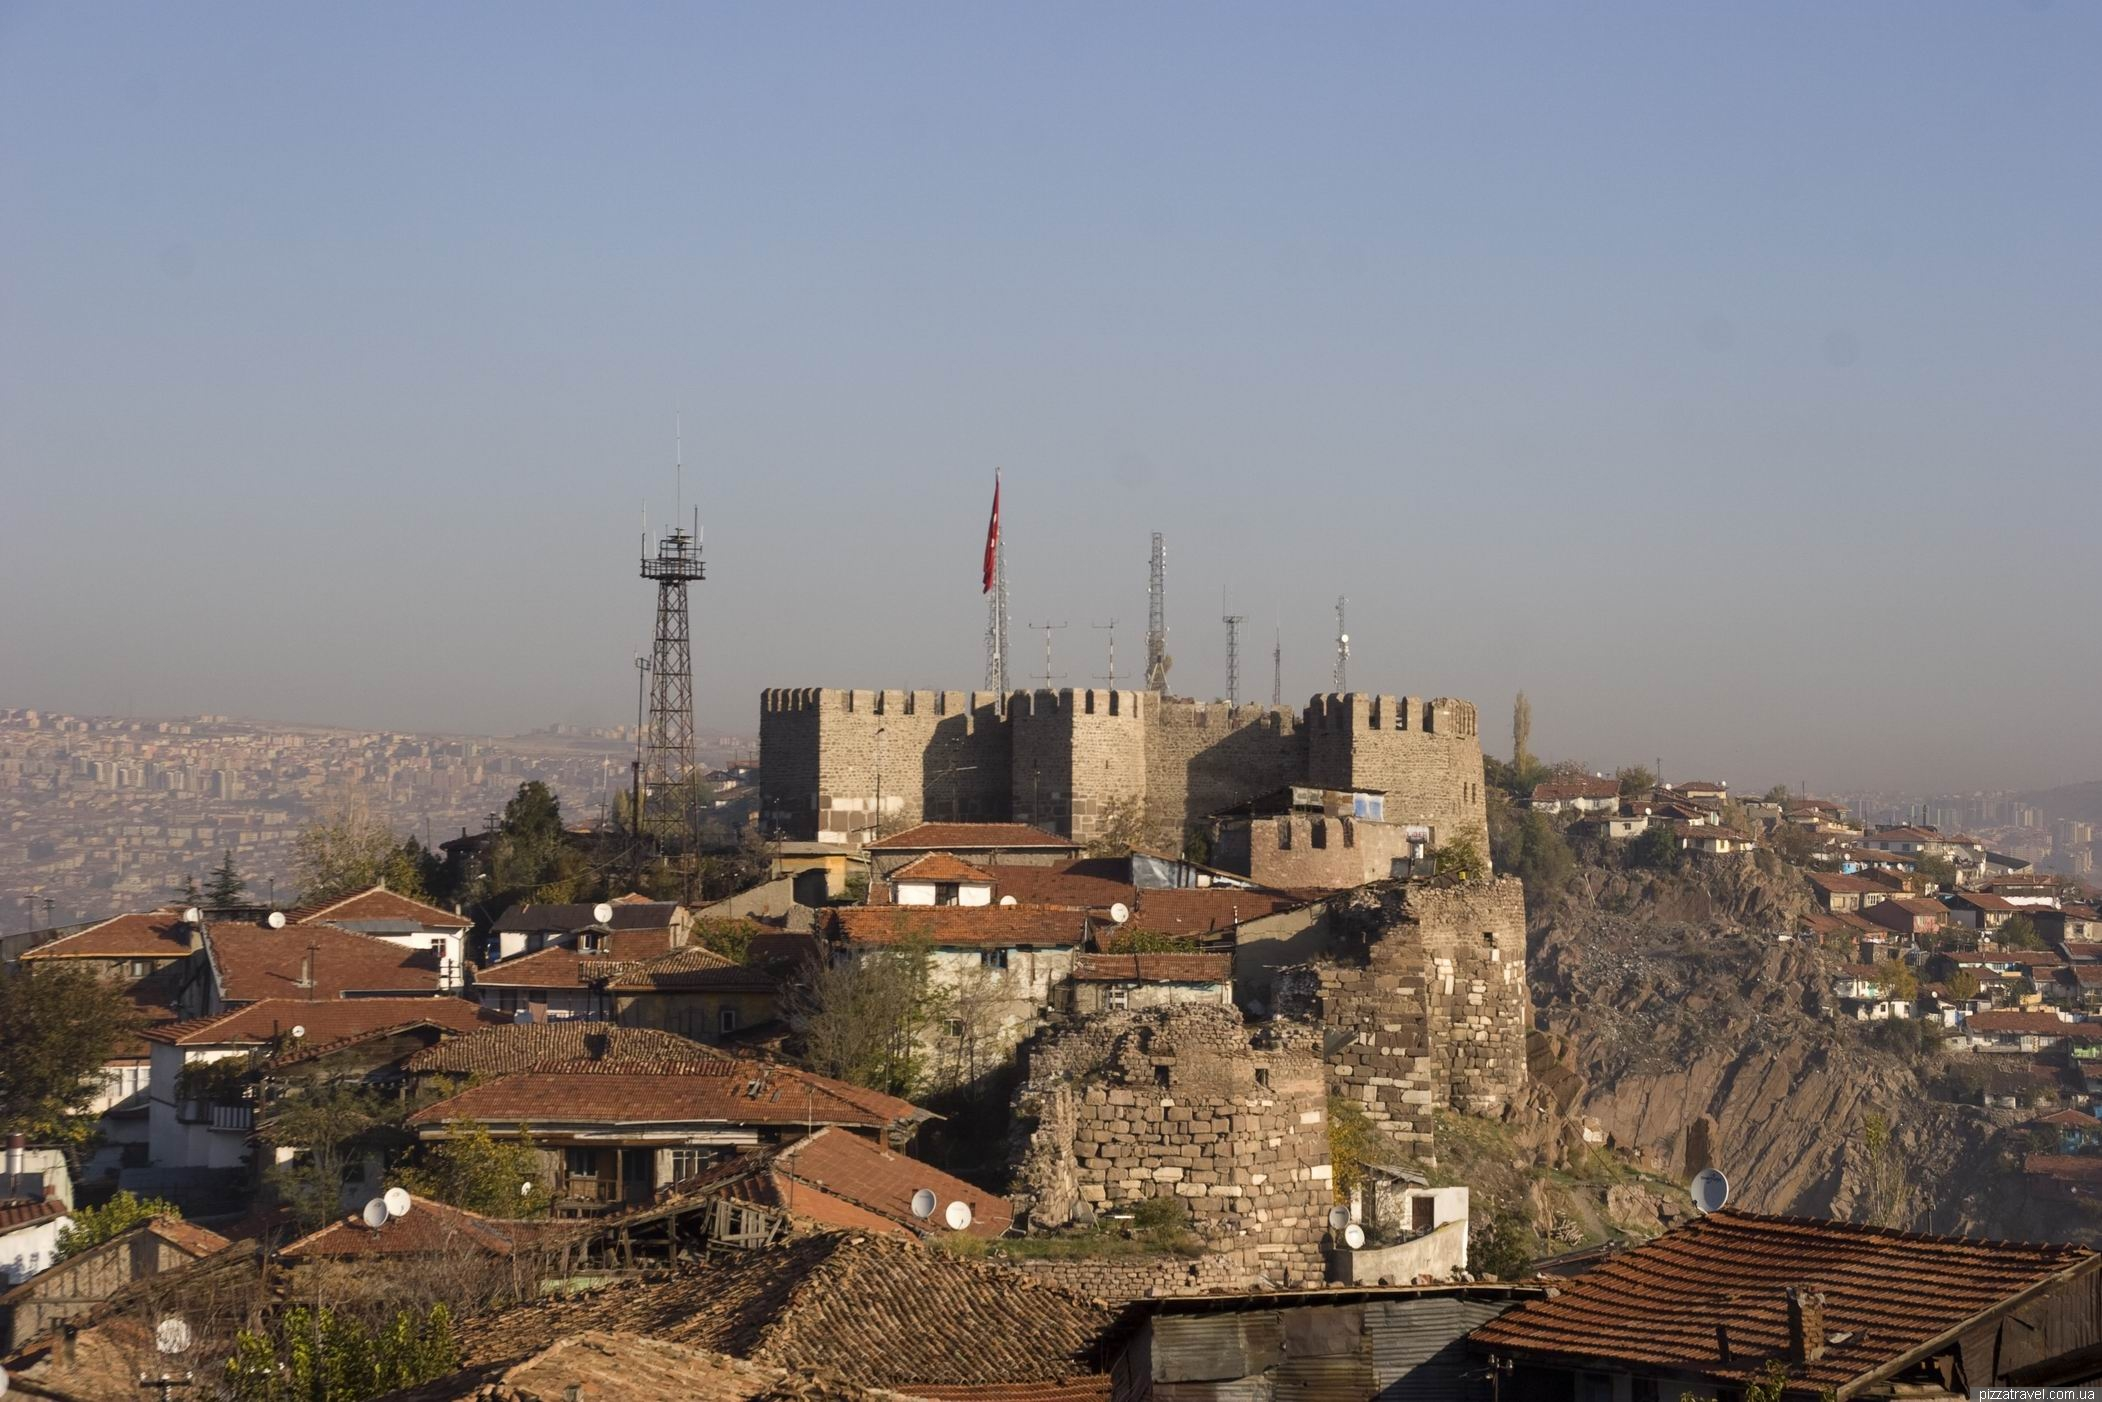 Ankara - Turkey - Blog about interesting places